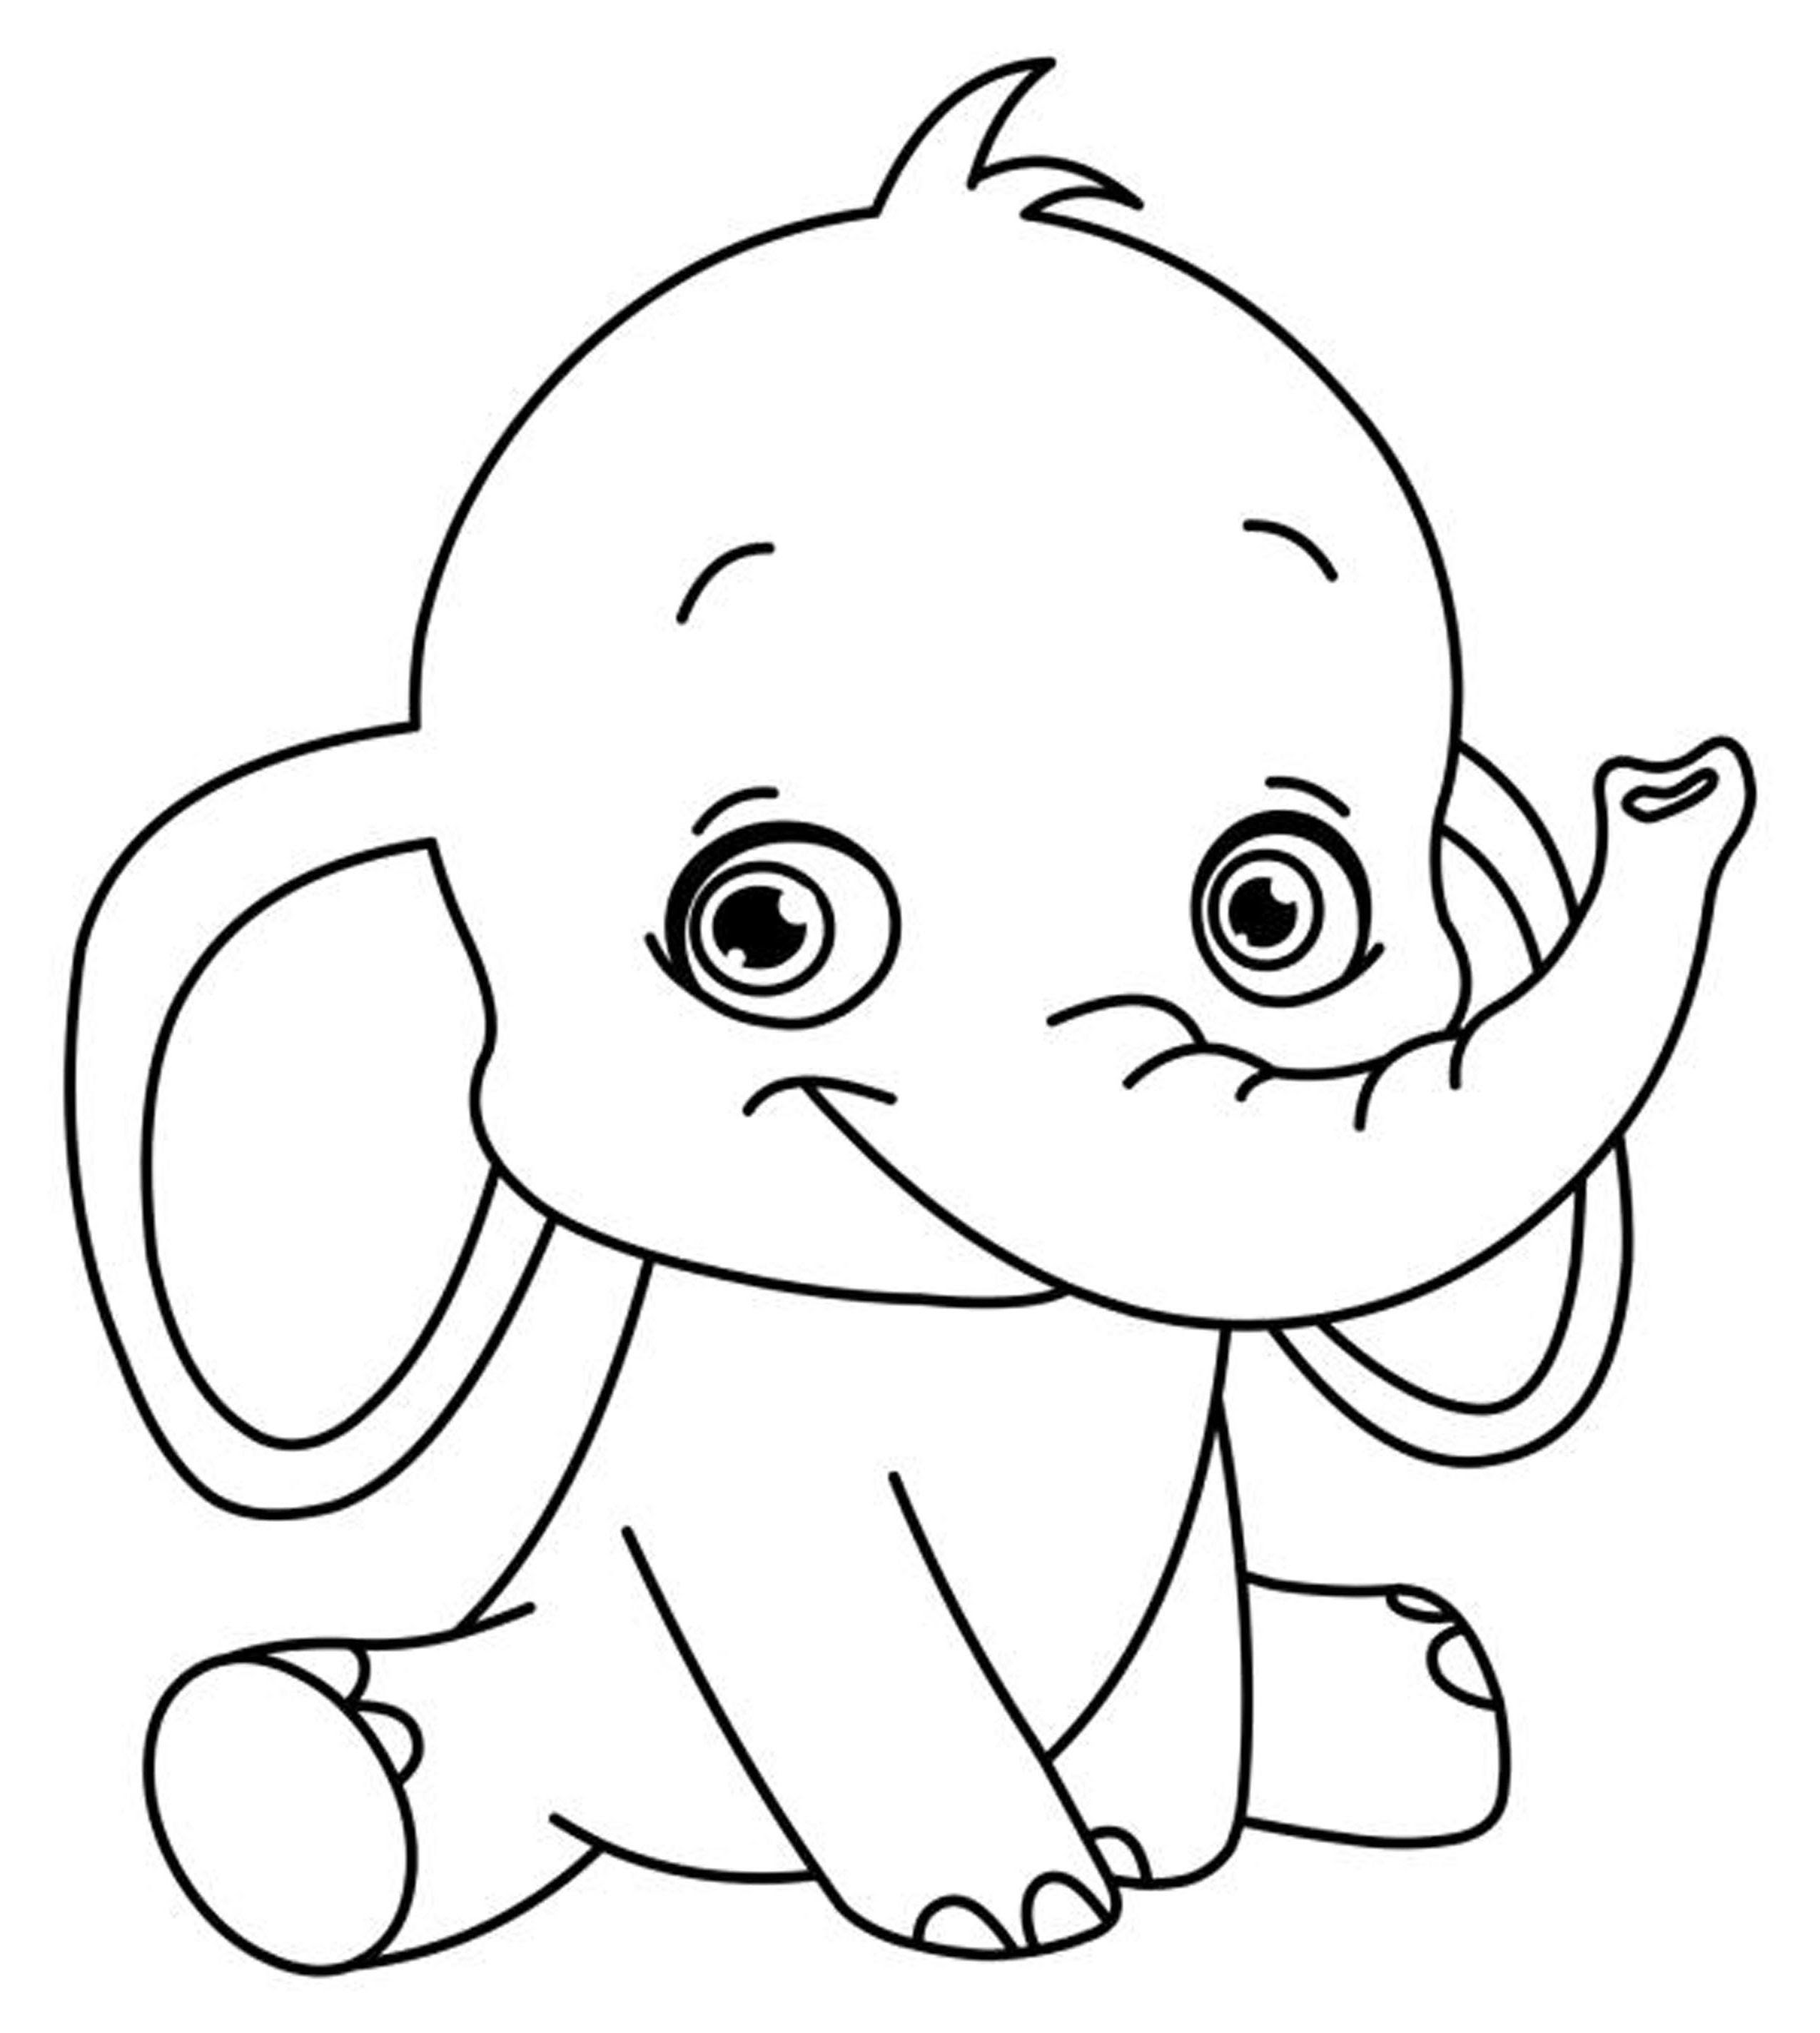 Coloring Pages For 10 Year Olds Printable at GetColorings ...